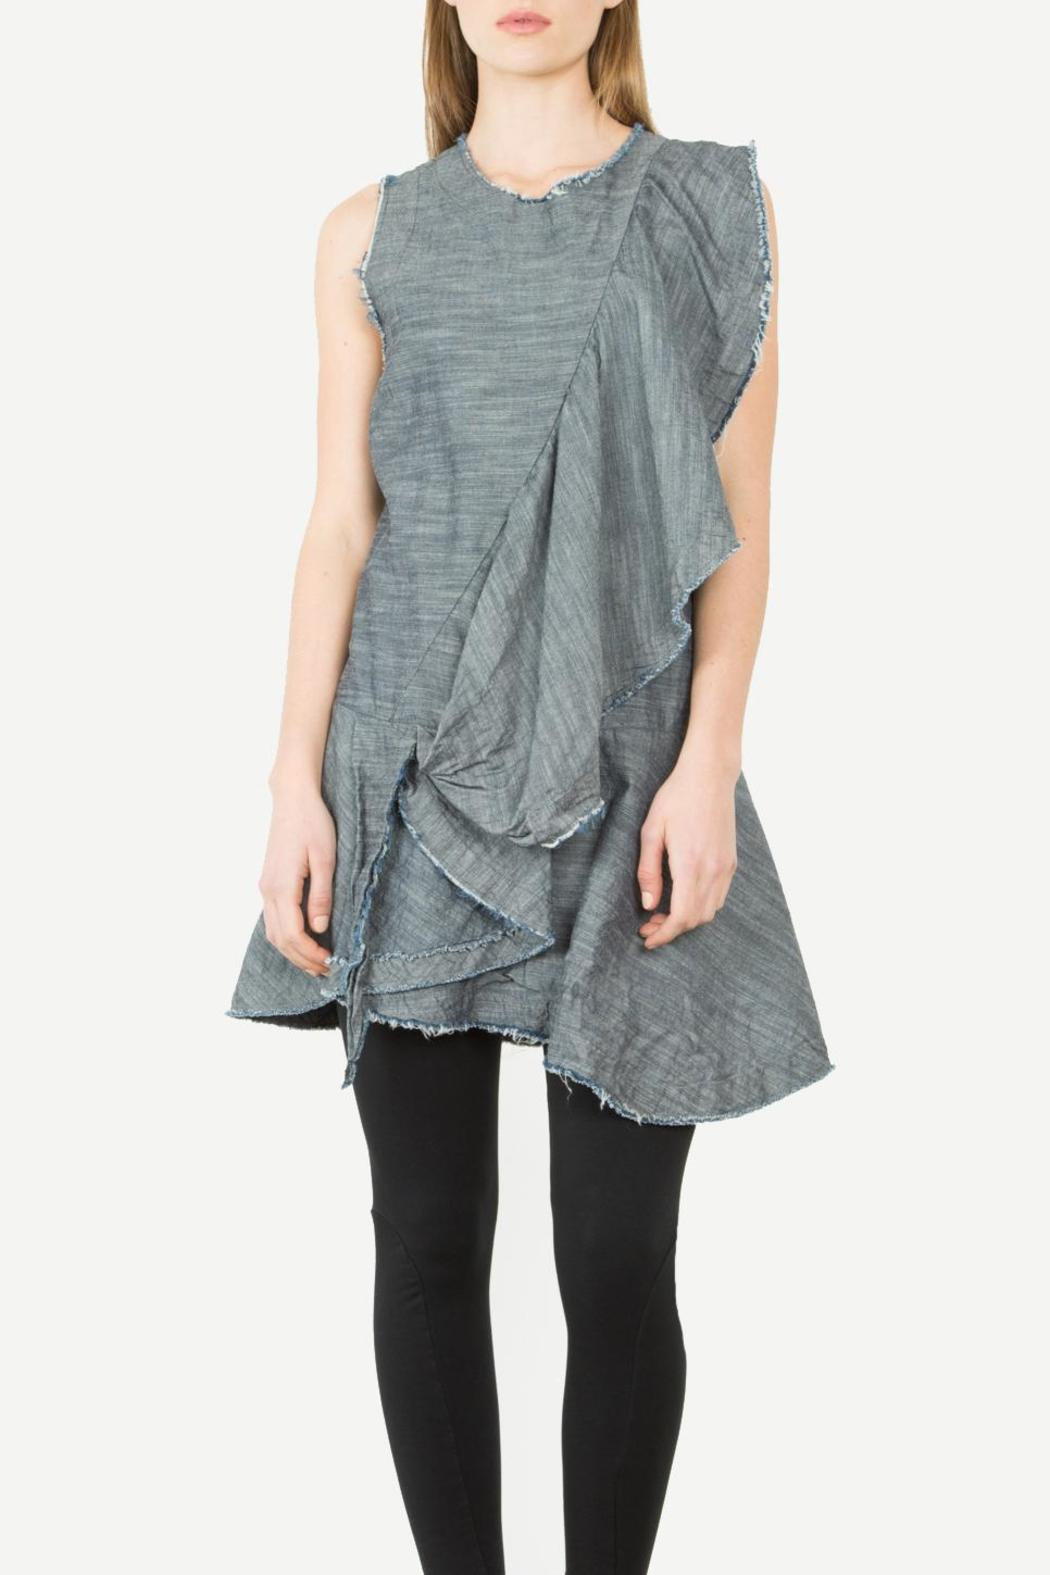 Prairie Underground Crackwillow Tunic Dress - Front Cropped Image